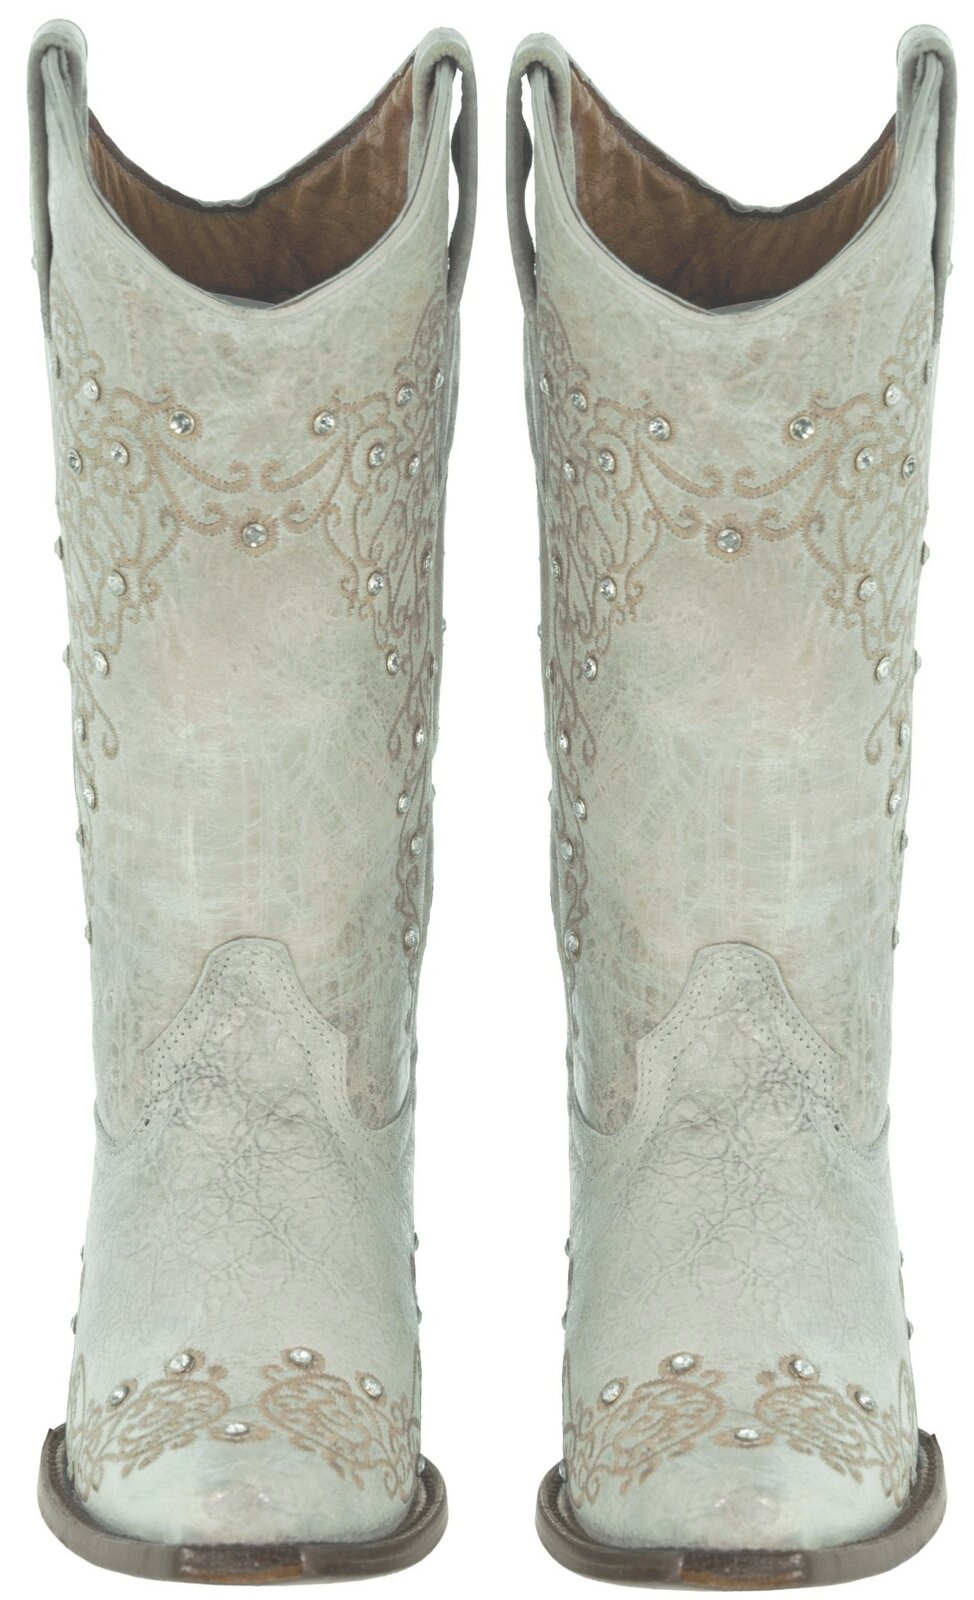 THE WEDDING BOOT Off White Crystal Studded Floral Embroidery Genuine Leather Womens Cowgirl Boots 5-10